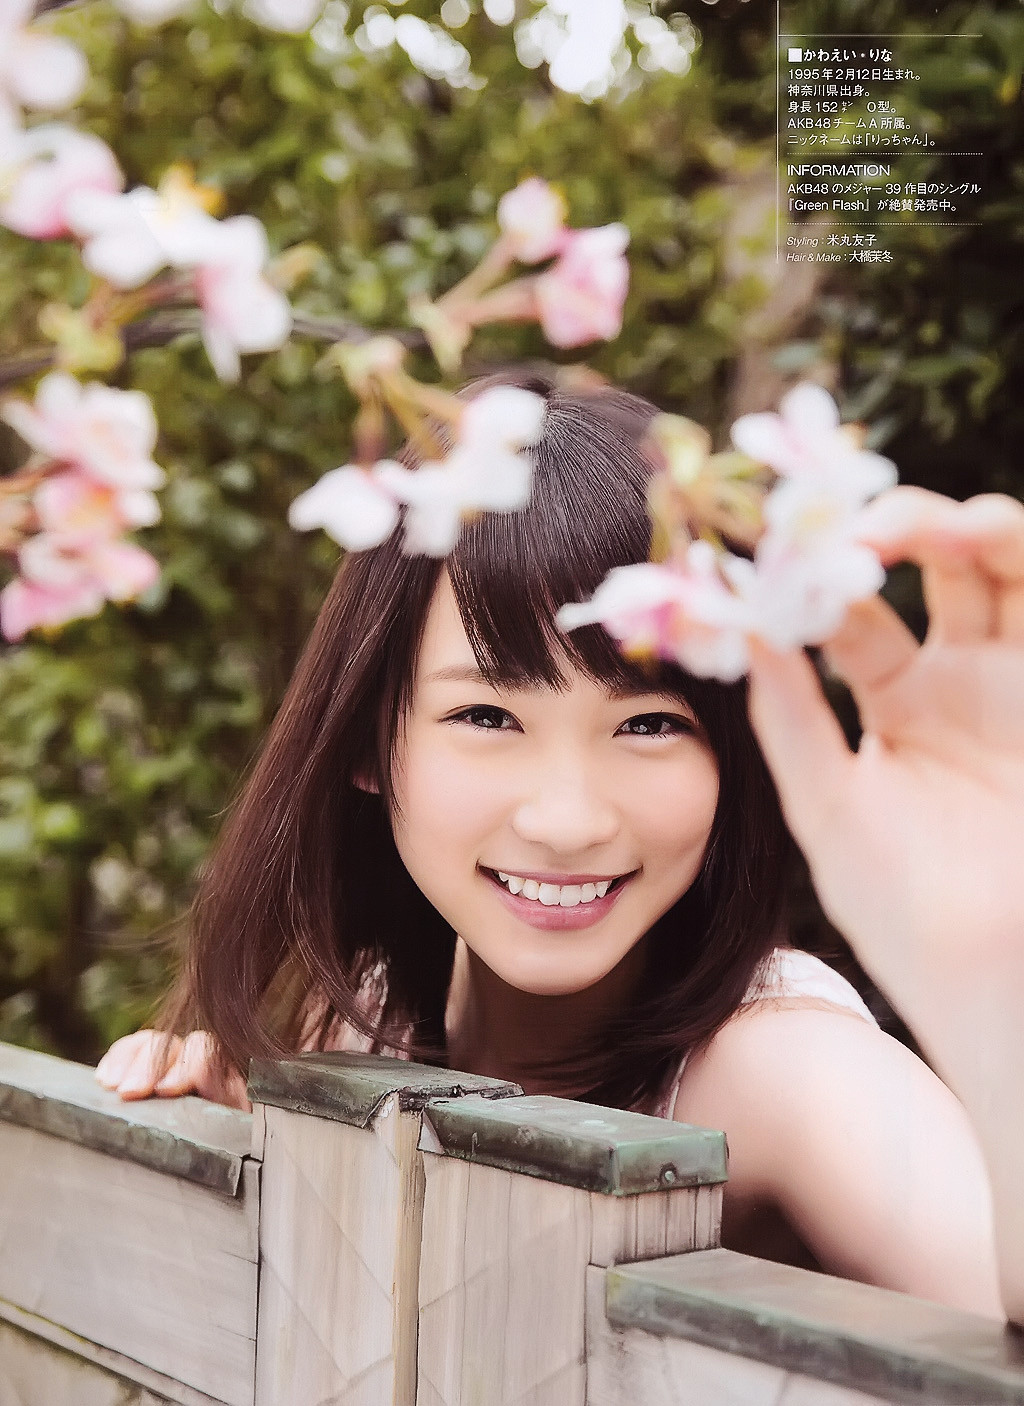 Rina Kawaei Photo Essay - fanpop..com